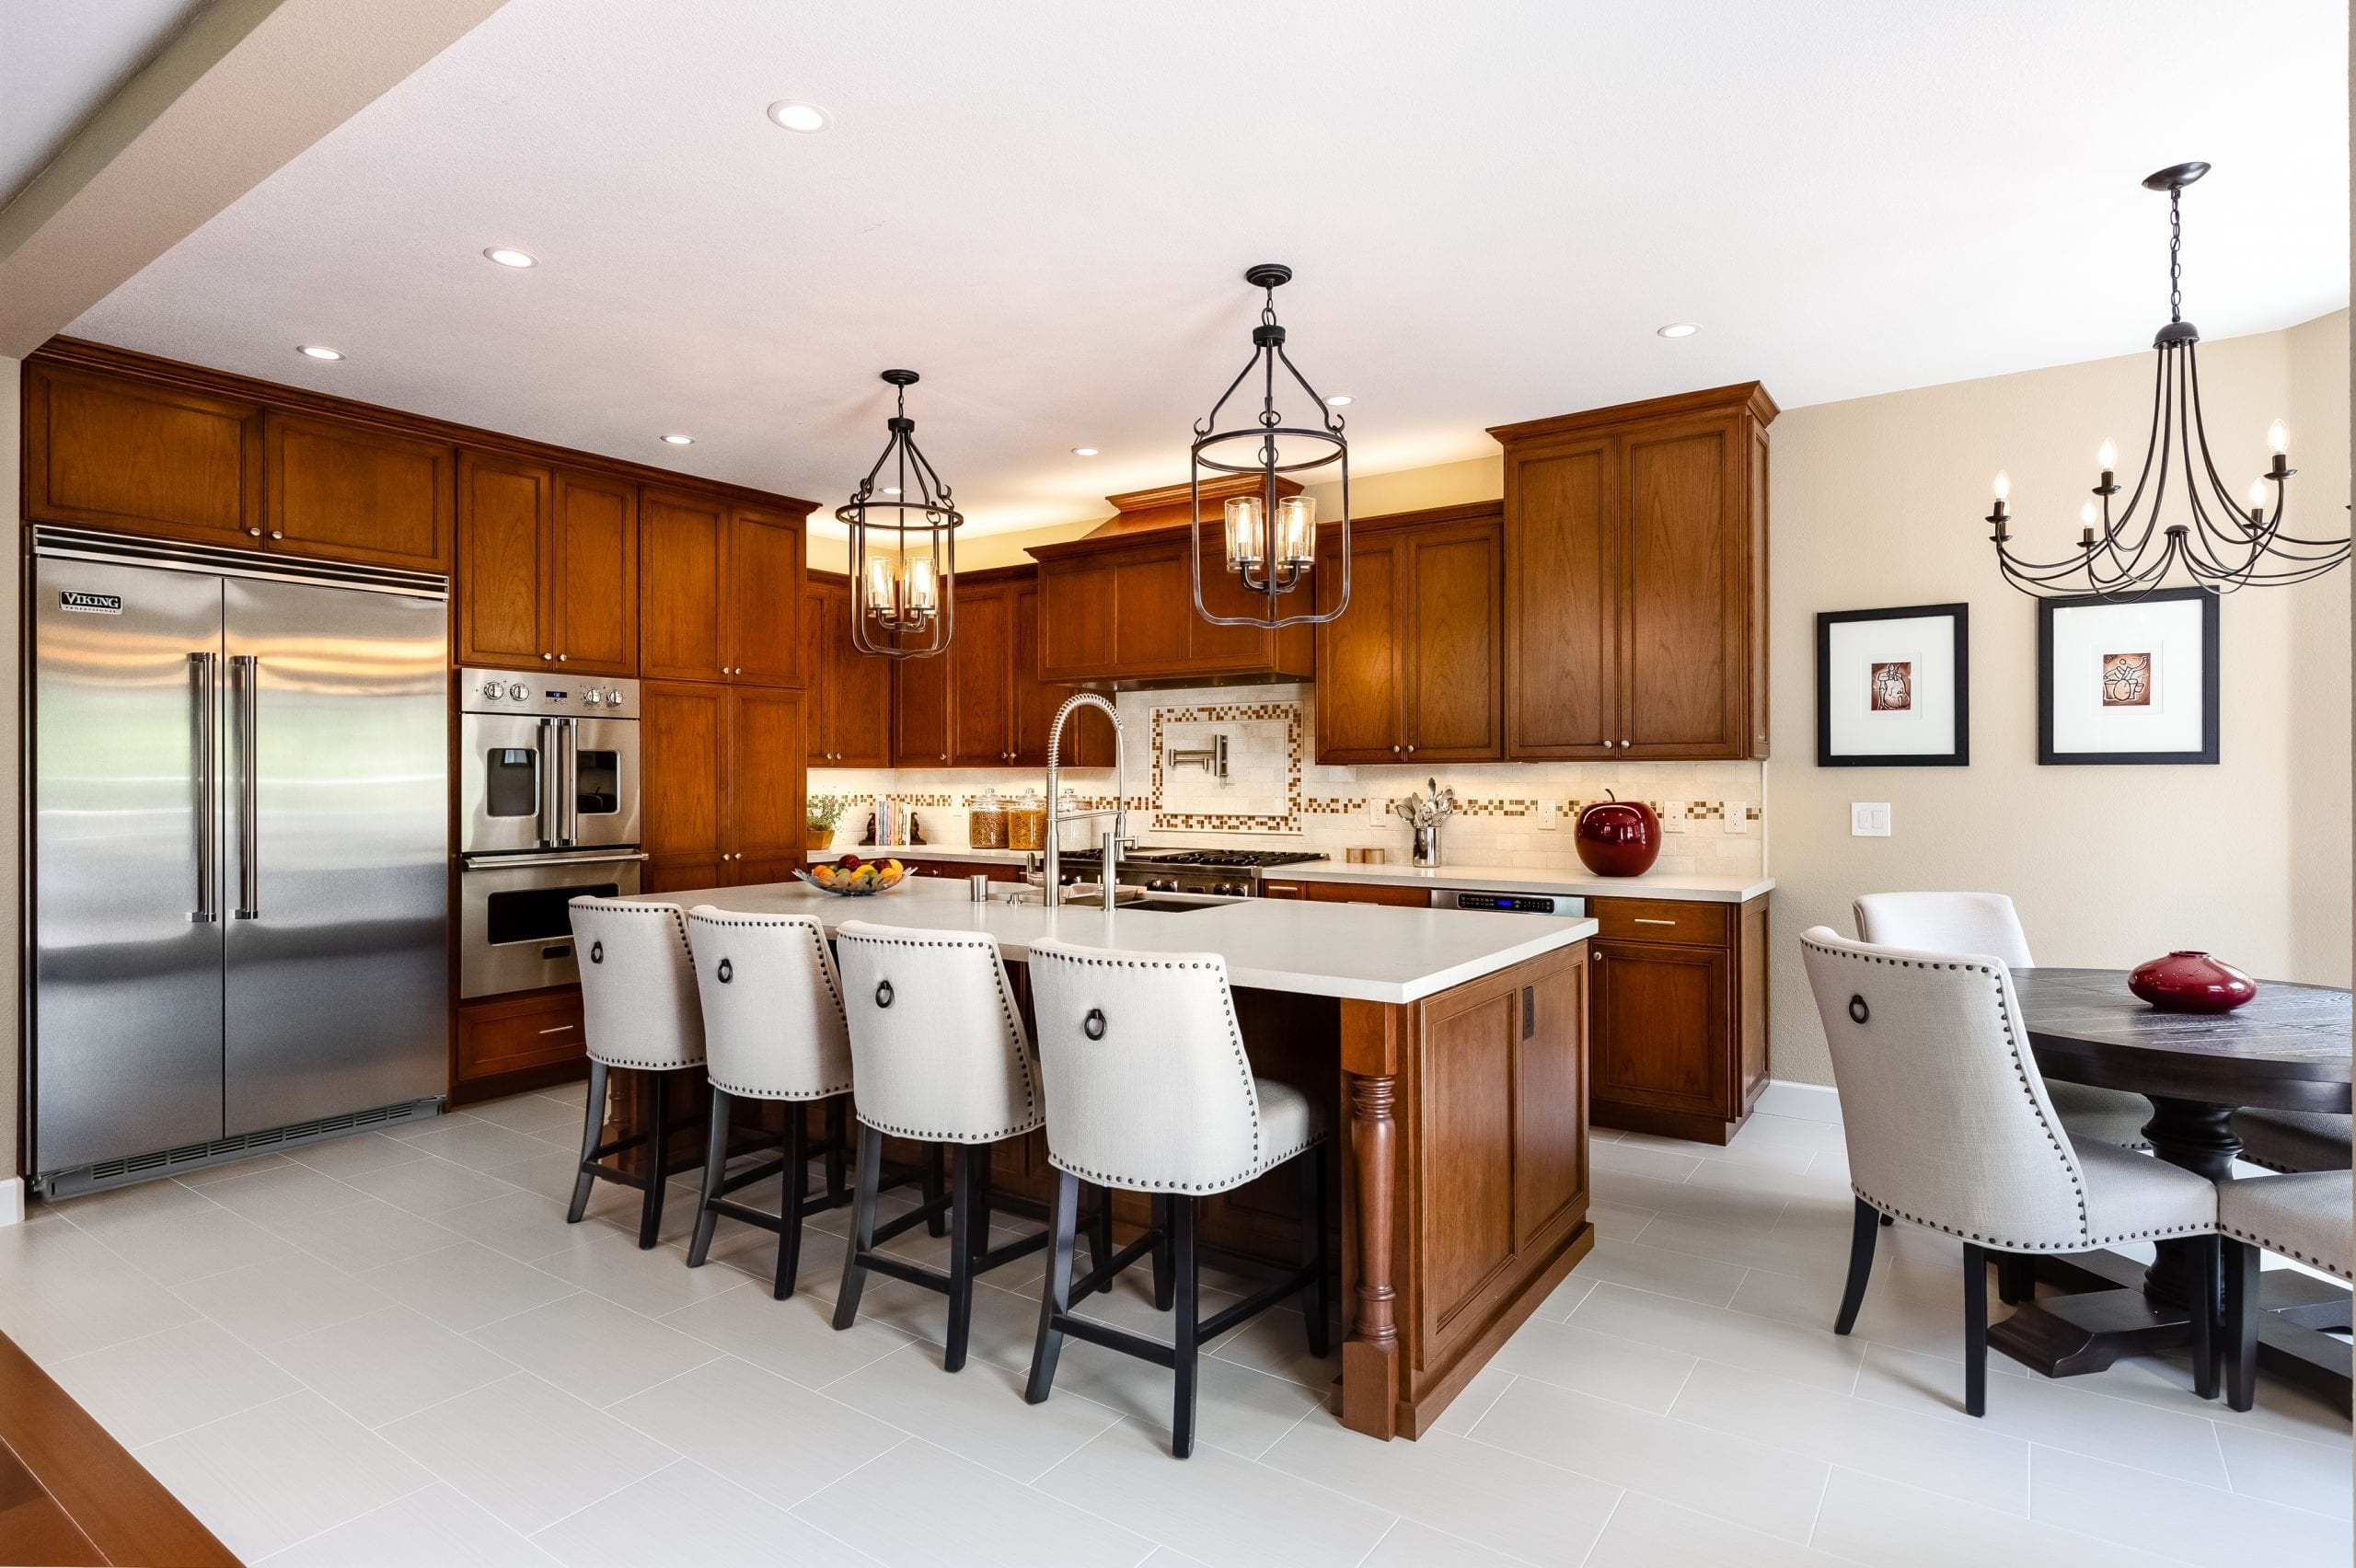 wide shot of kitchen showing full cabinet wall and kitchen island